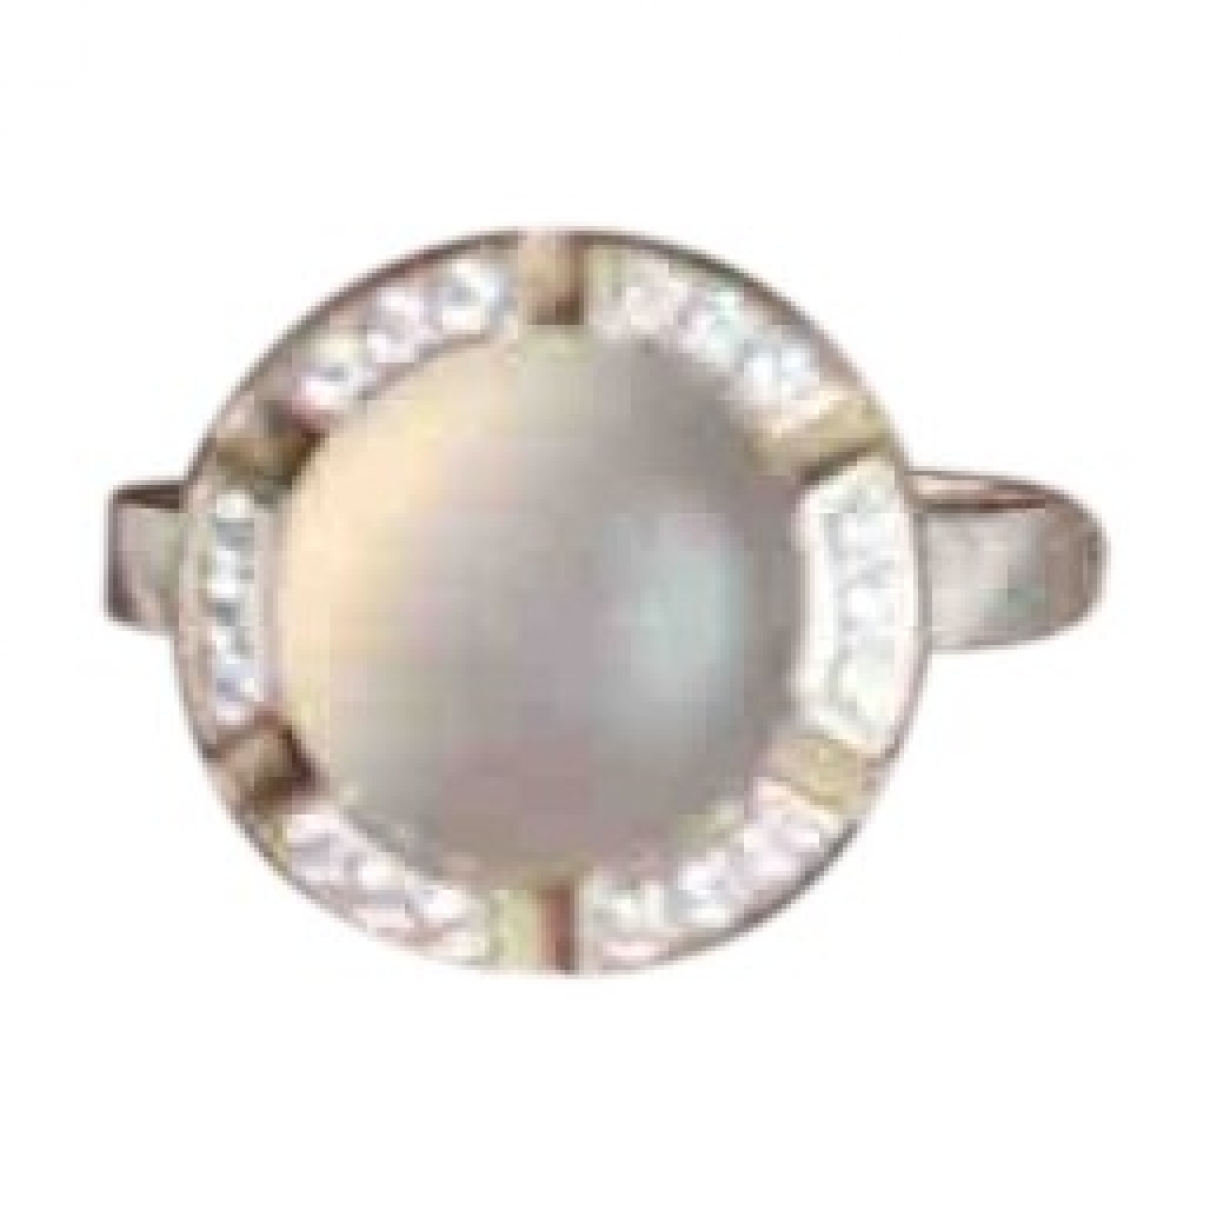 Chaumet Class One Ring in  Weiss Weissgold